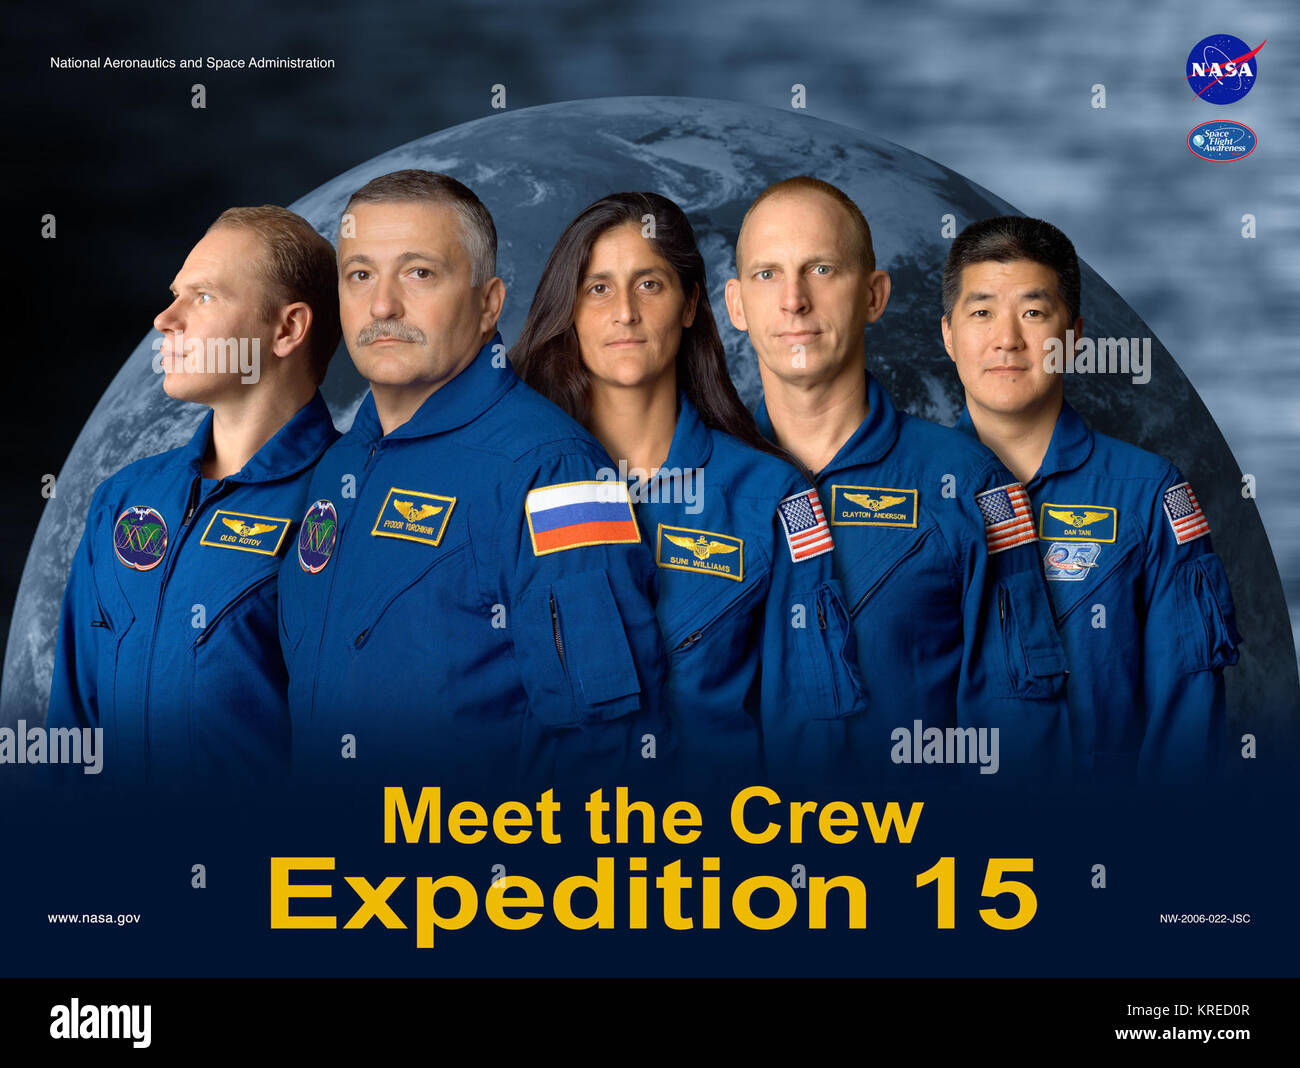 Expedition 15 crew poster - Stock Image